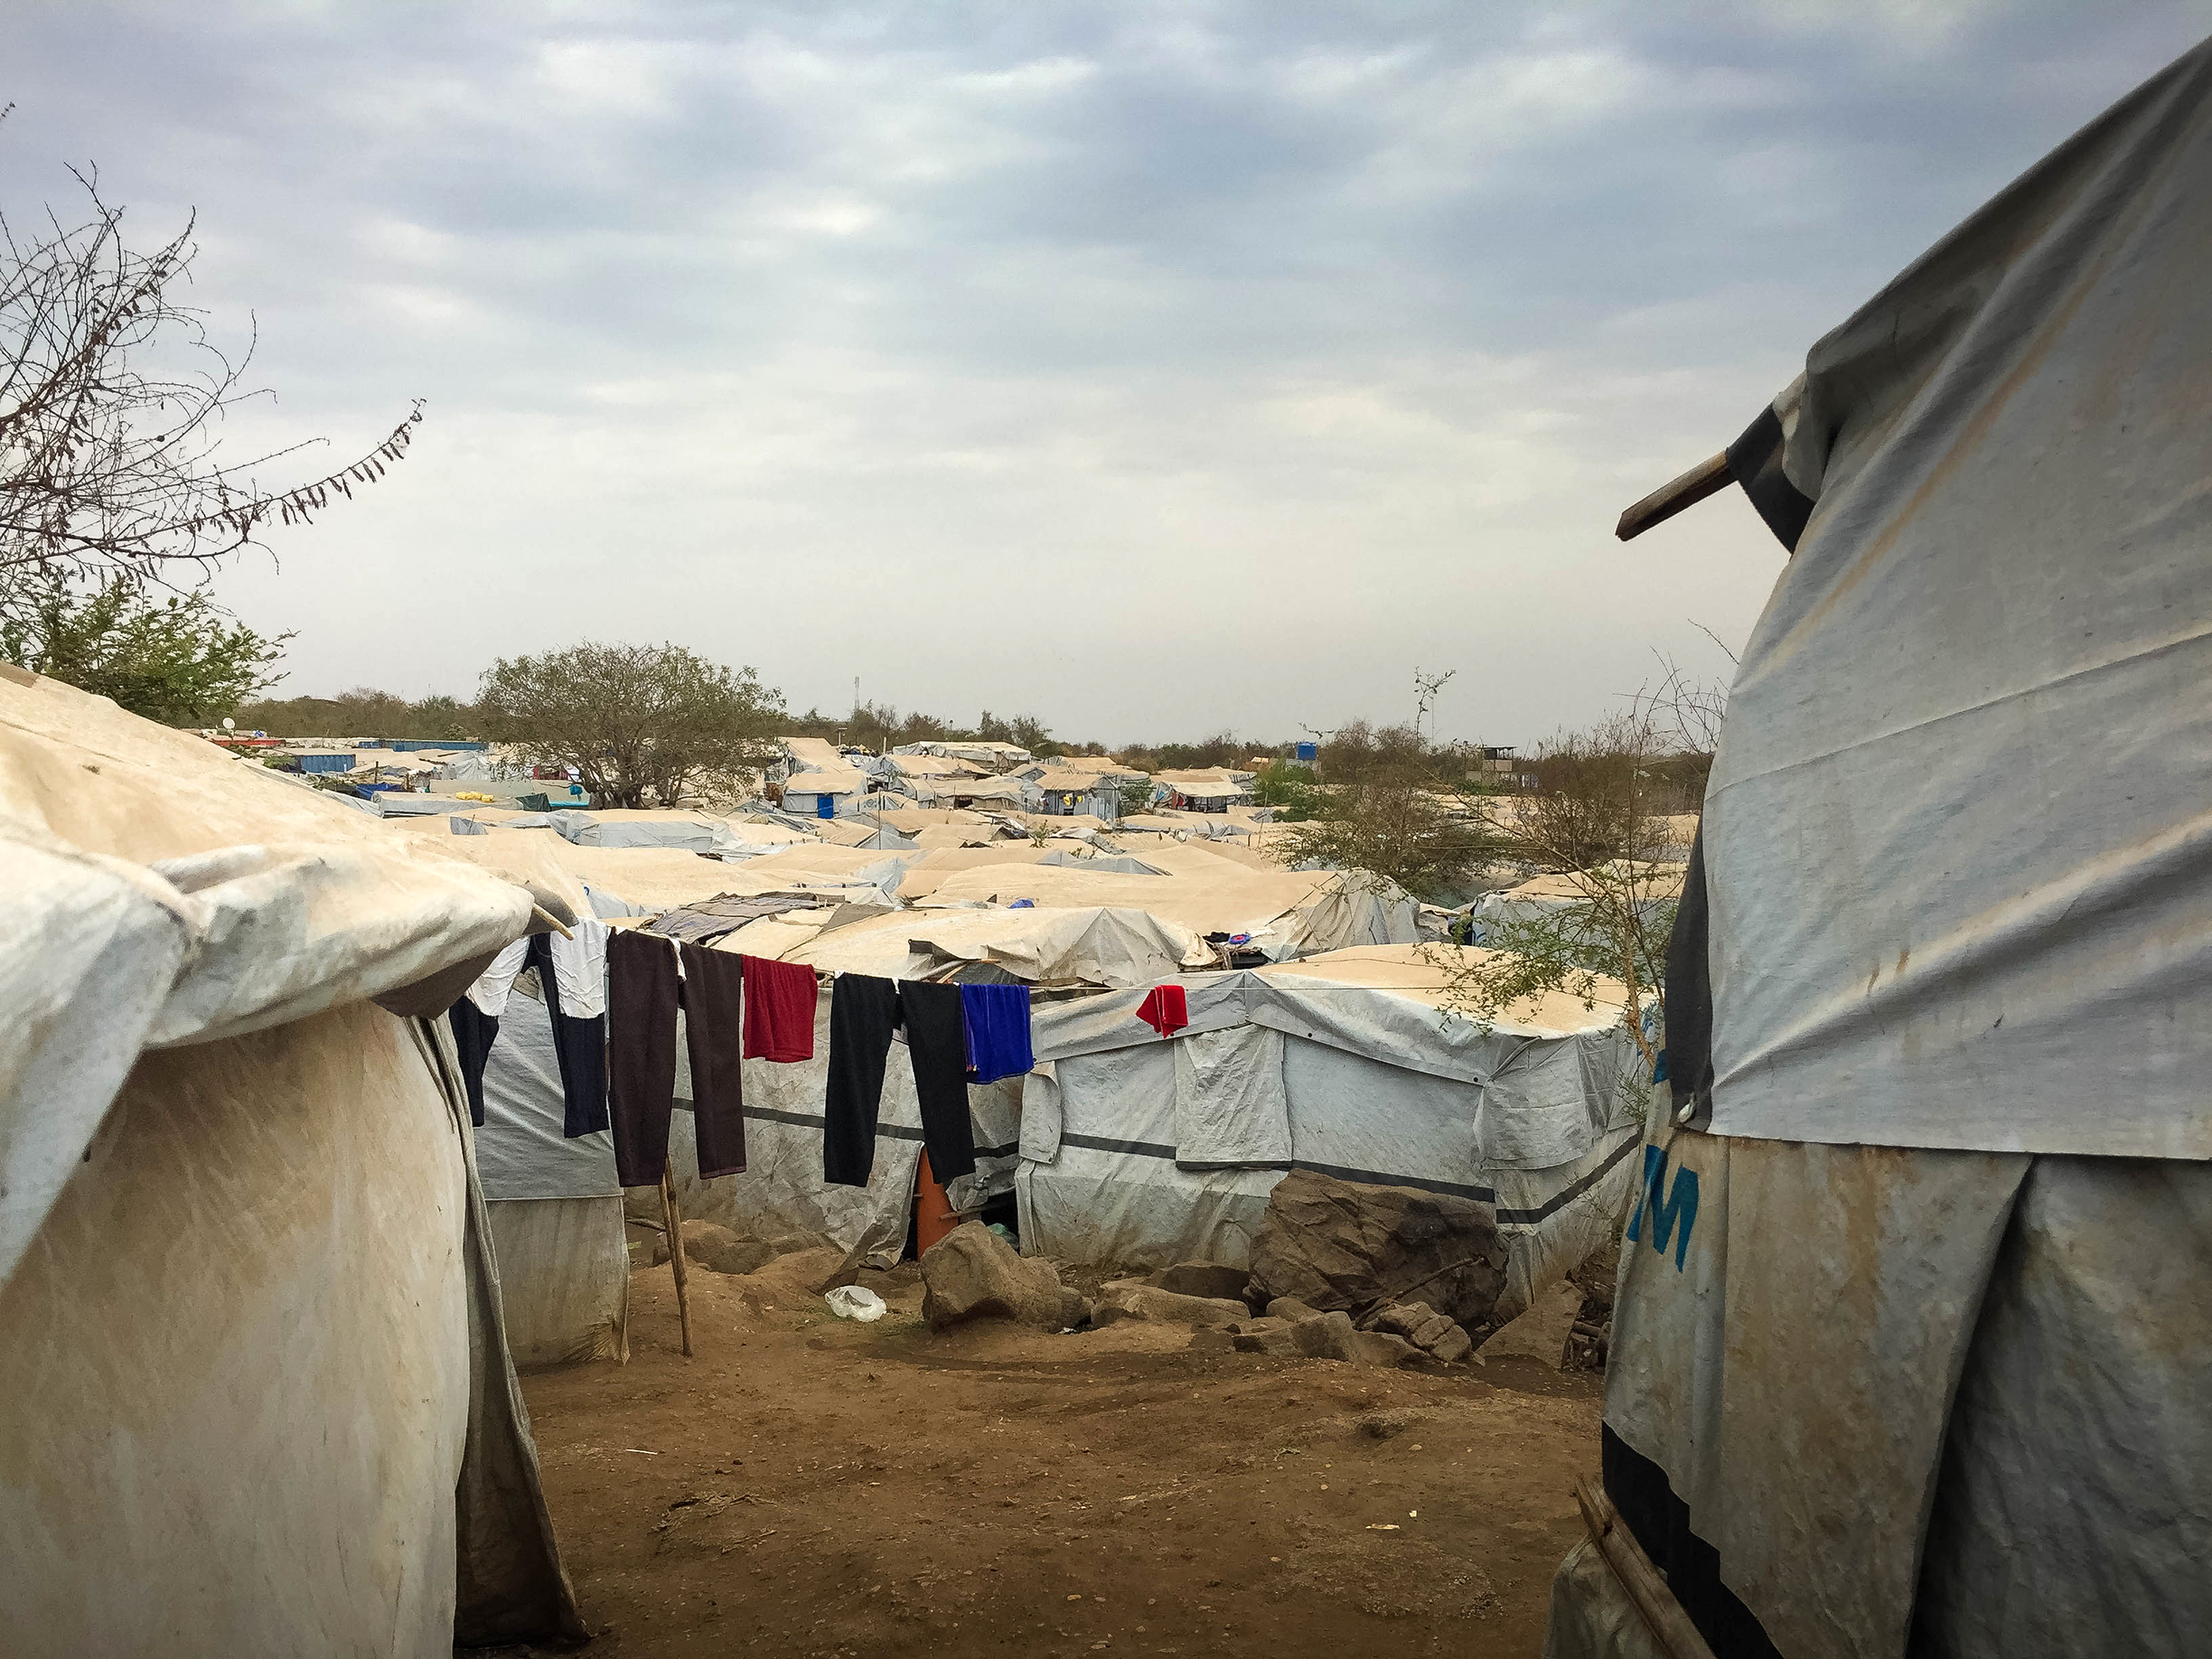 Displaced people's shelters on one of Juba's Protection of Civilians sites.